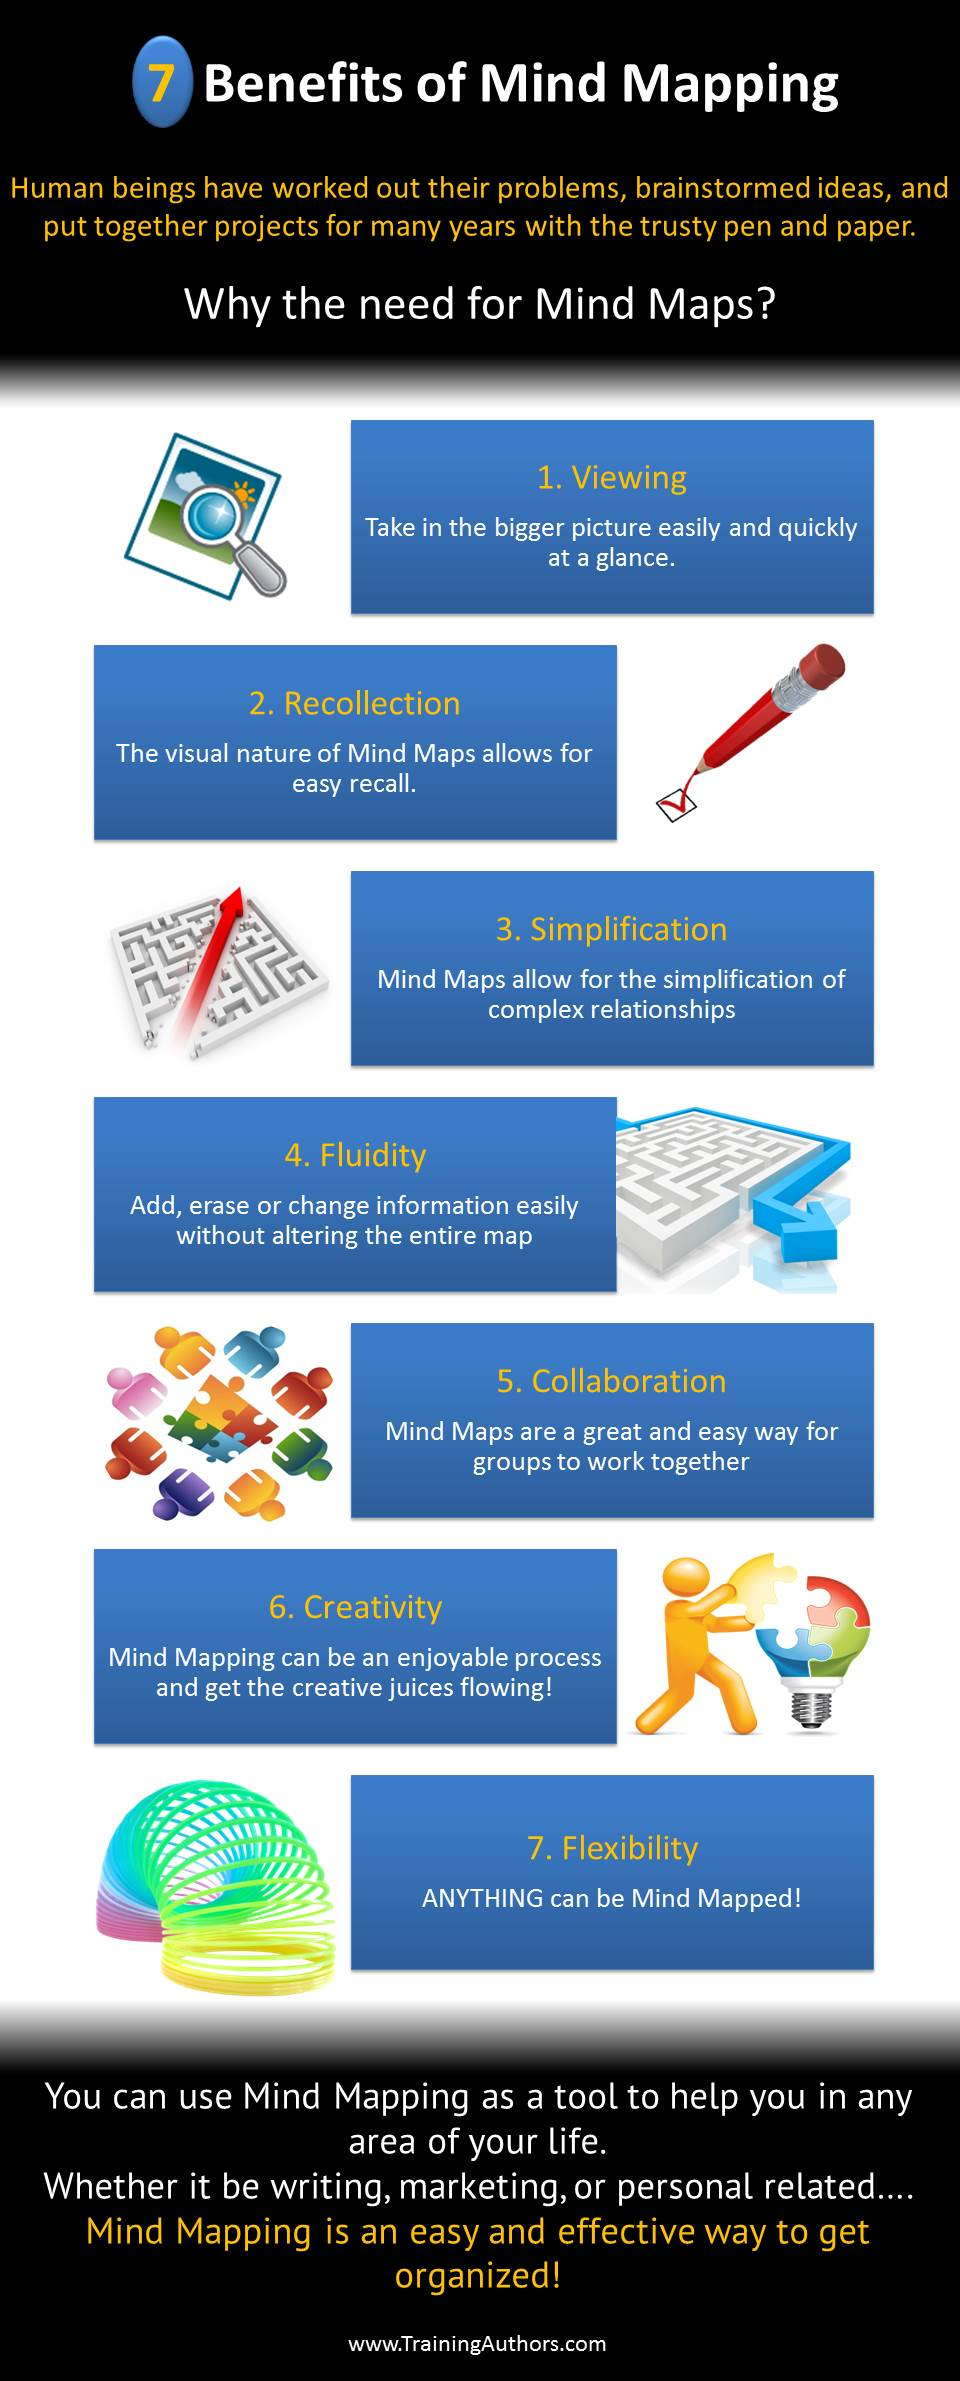 The 7 Benefits of Mind Mapping